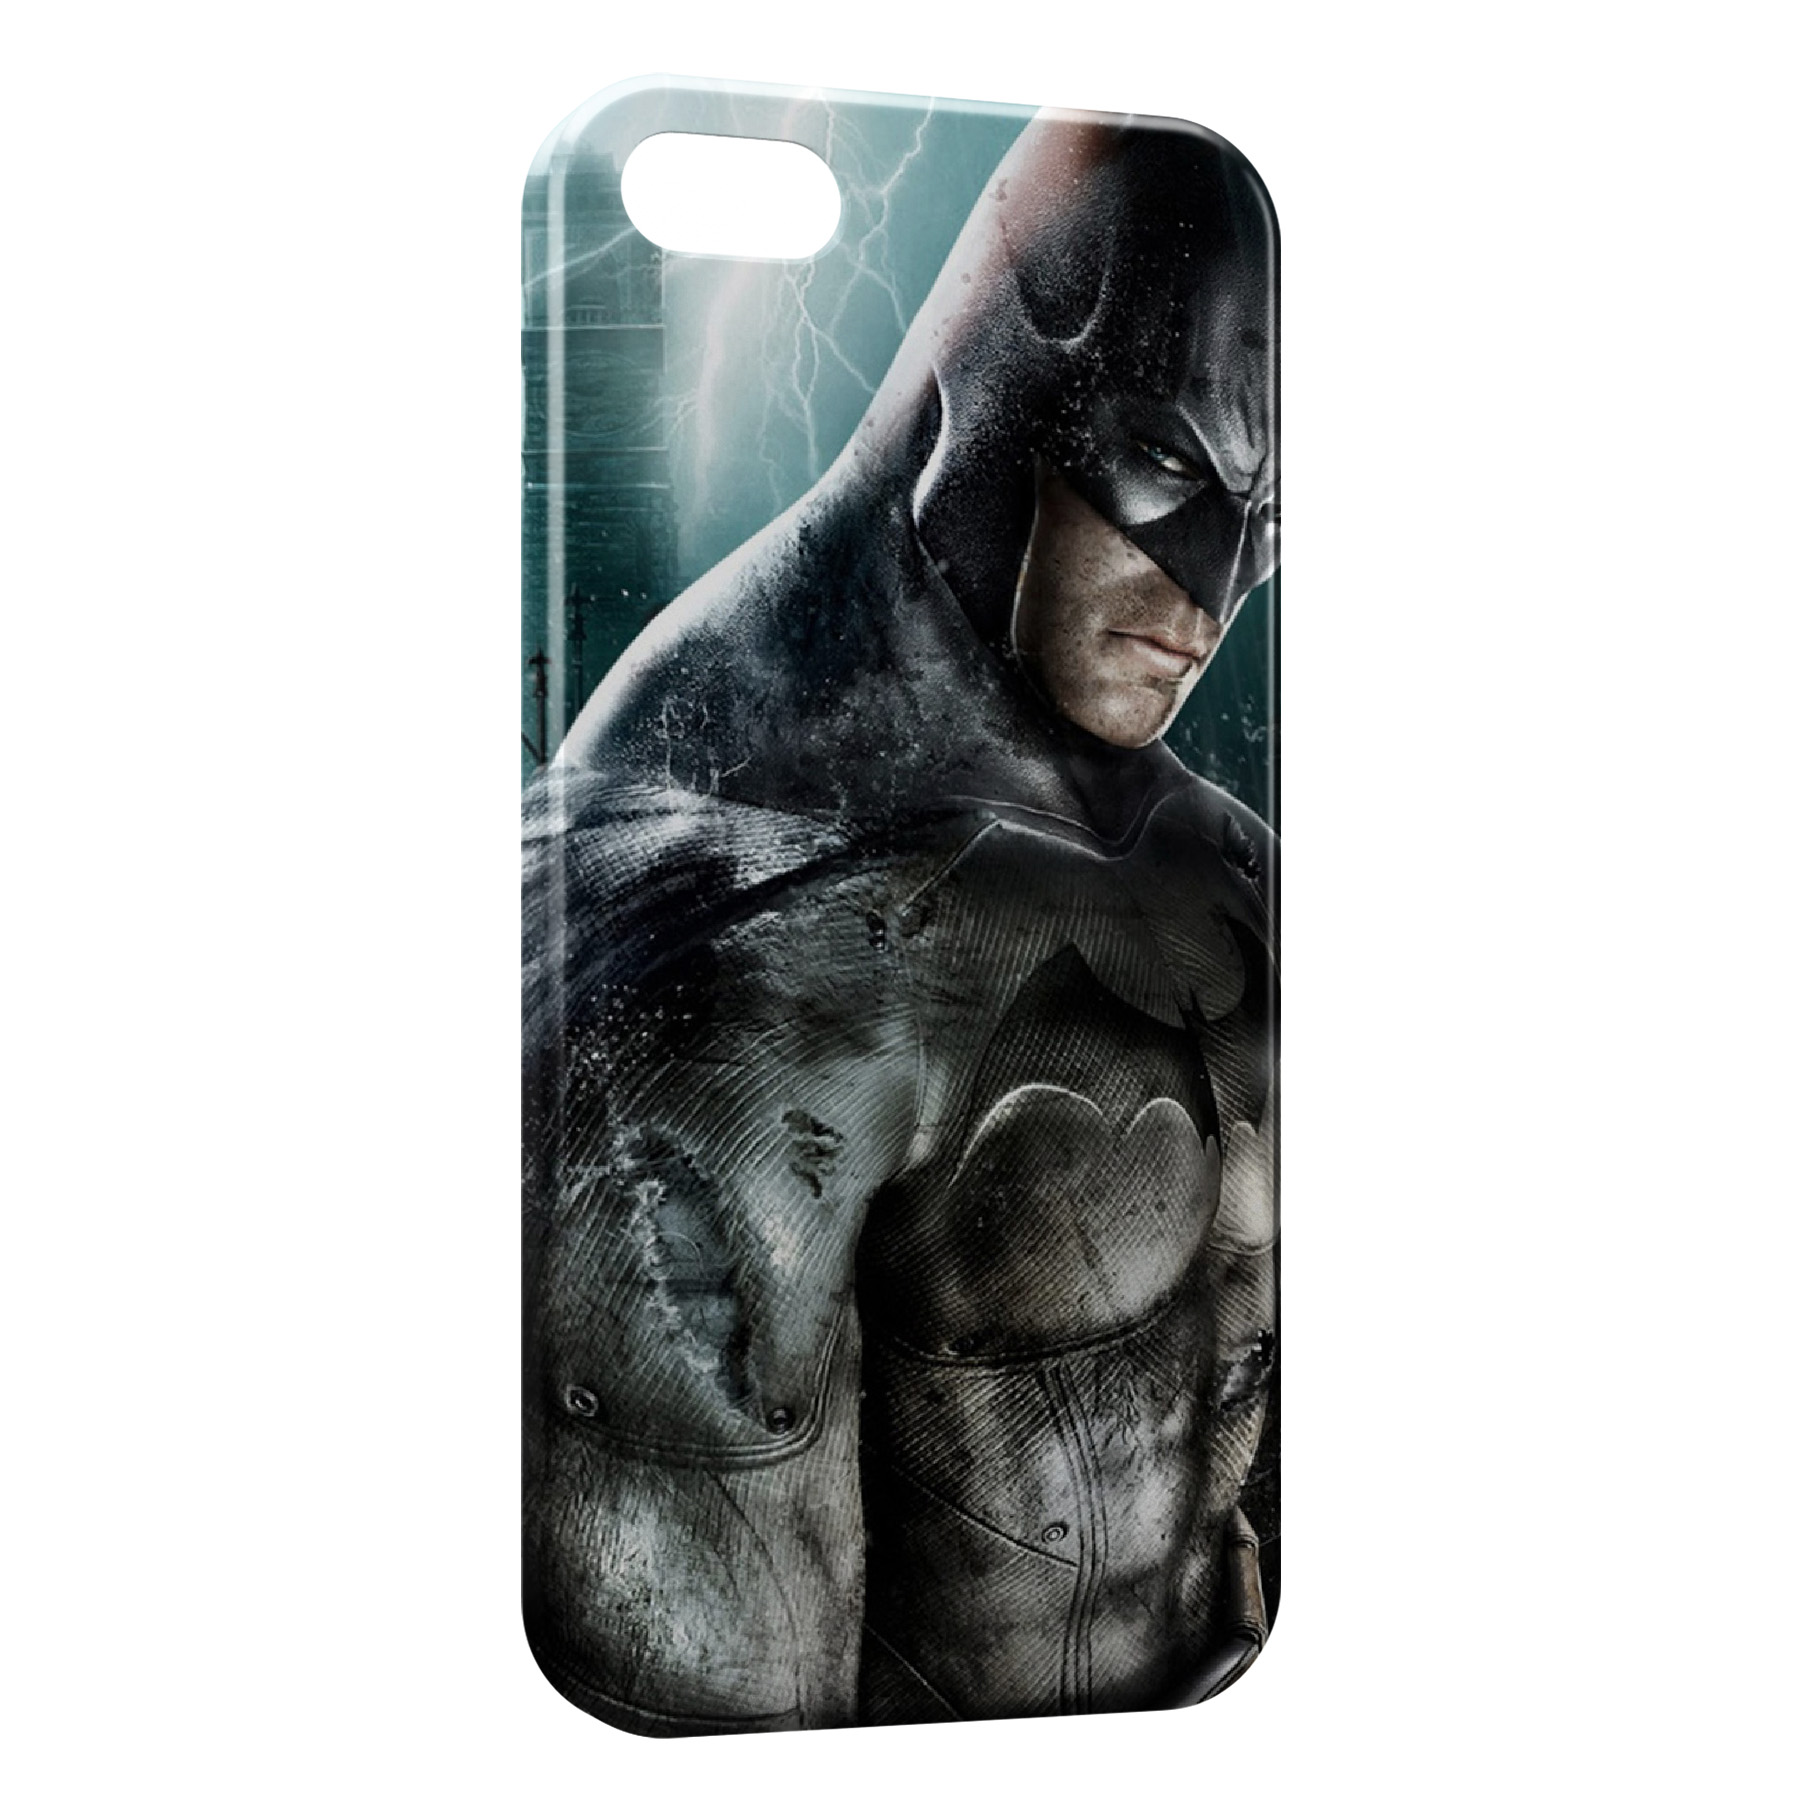 Coque iPhone 4 4S Batman 2